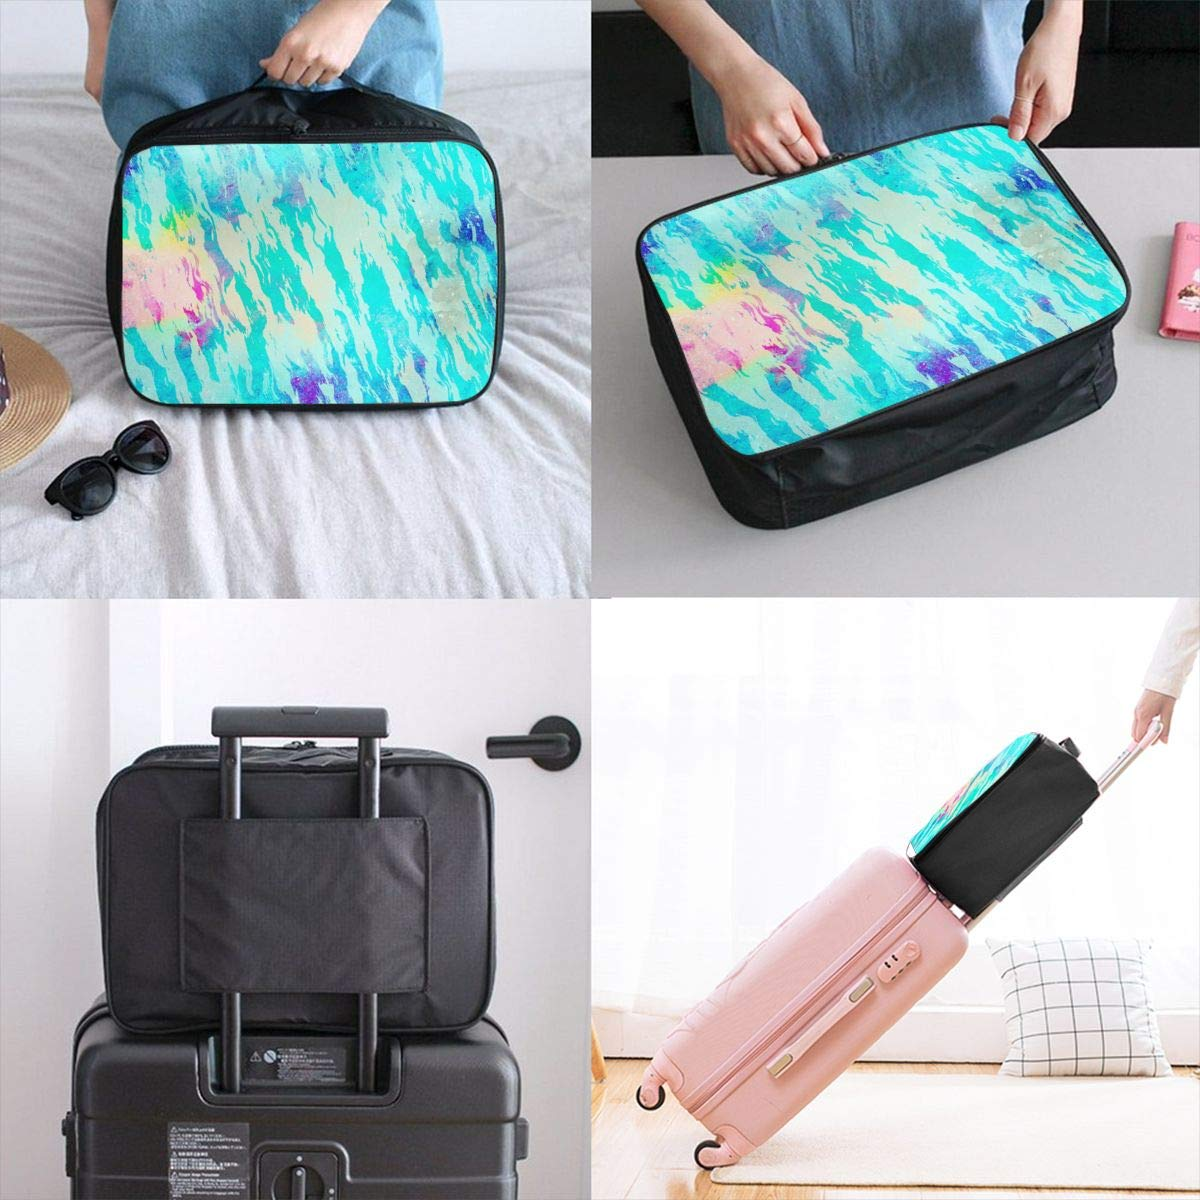 Abstract Art Shape Doodle Travel Lightweight Waterproof Foldable Storage Carry Luggage Large Capacity Portable Luggage Bag Duffel Bag